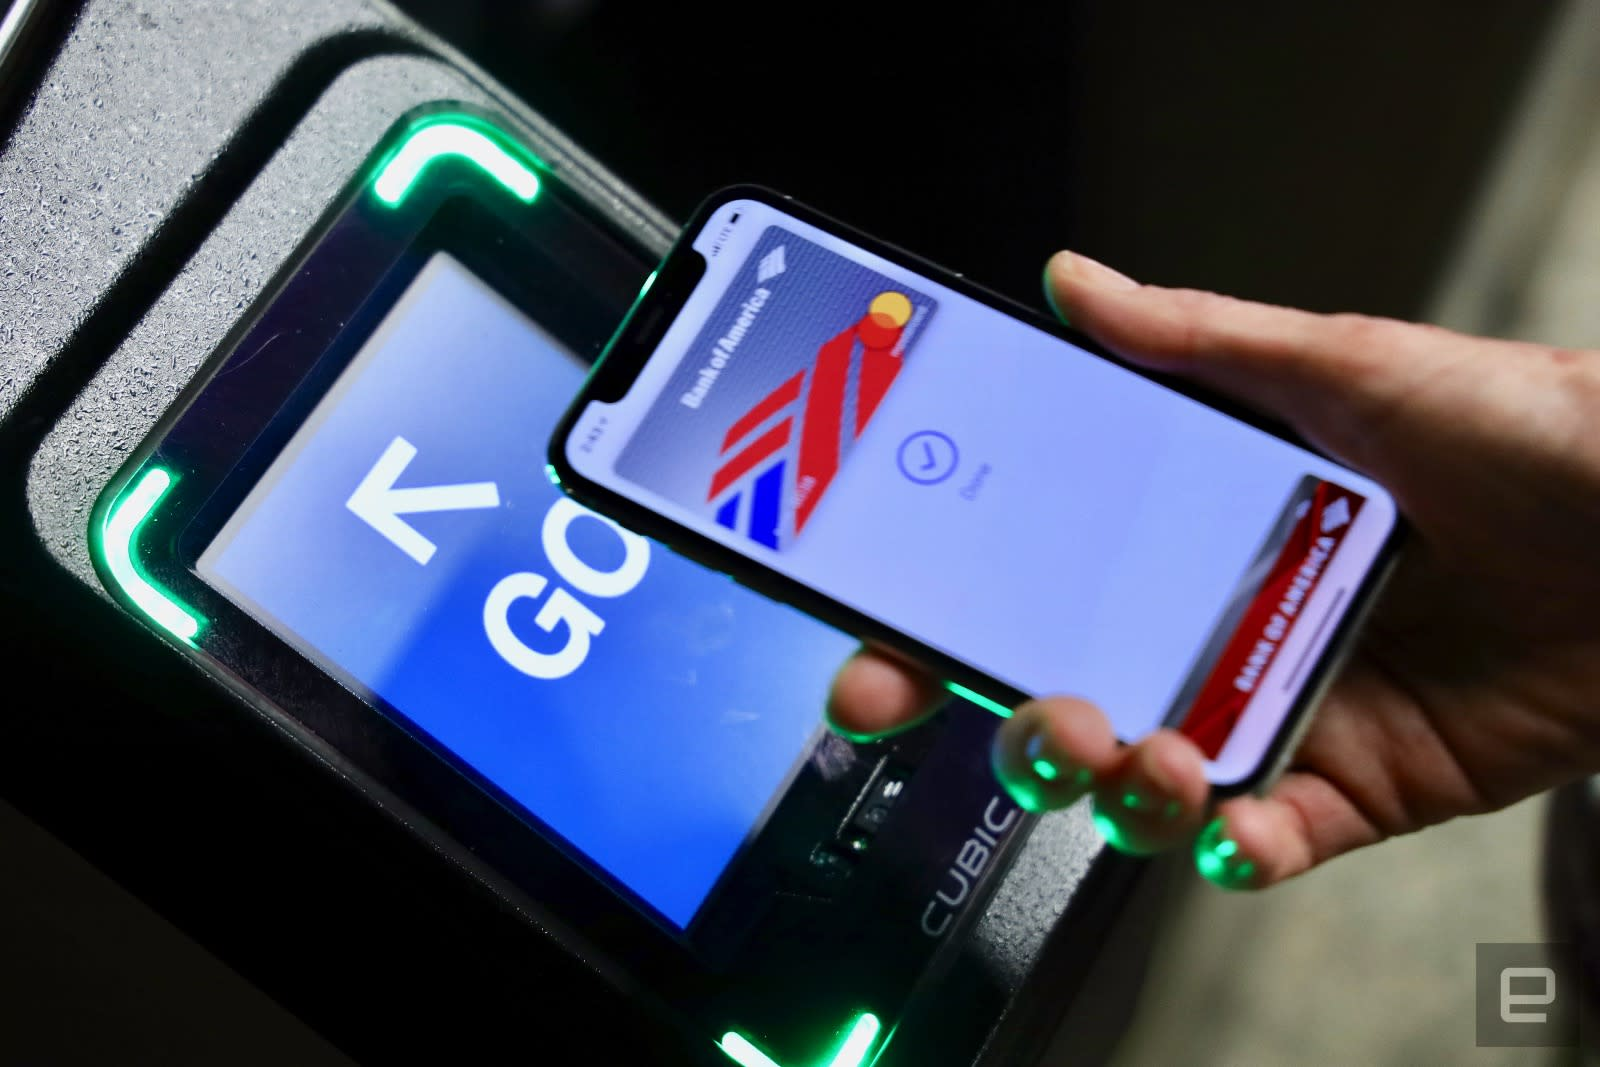 Portable Nyc Subway Map.Apple Pay Will Work On Nyc Subways And Buses Starting May 31st